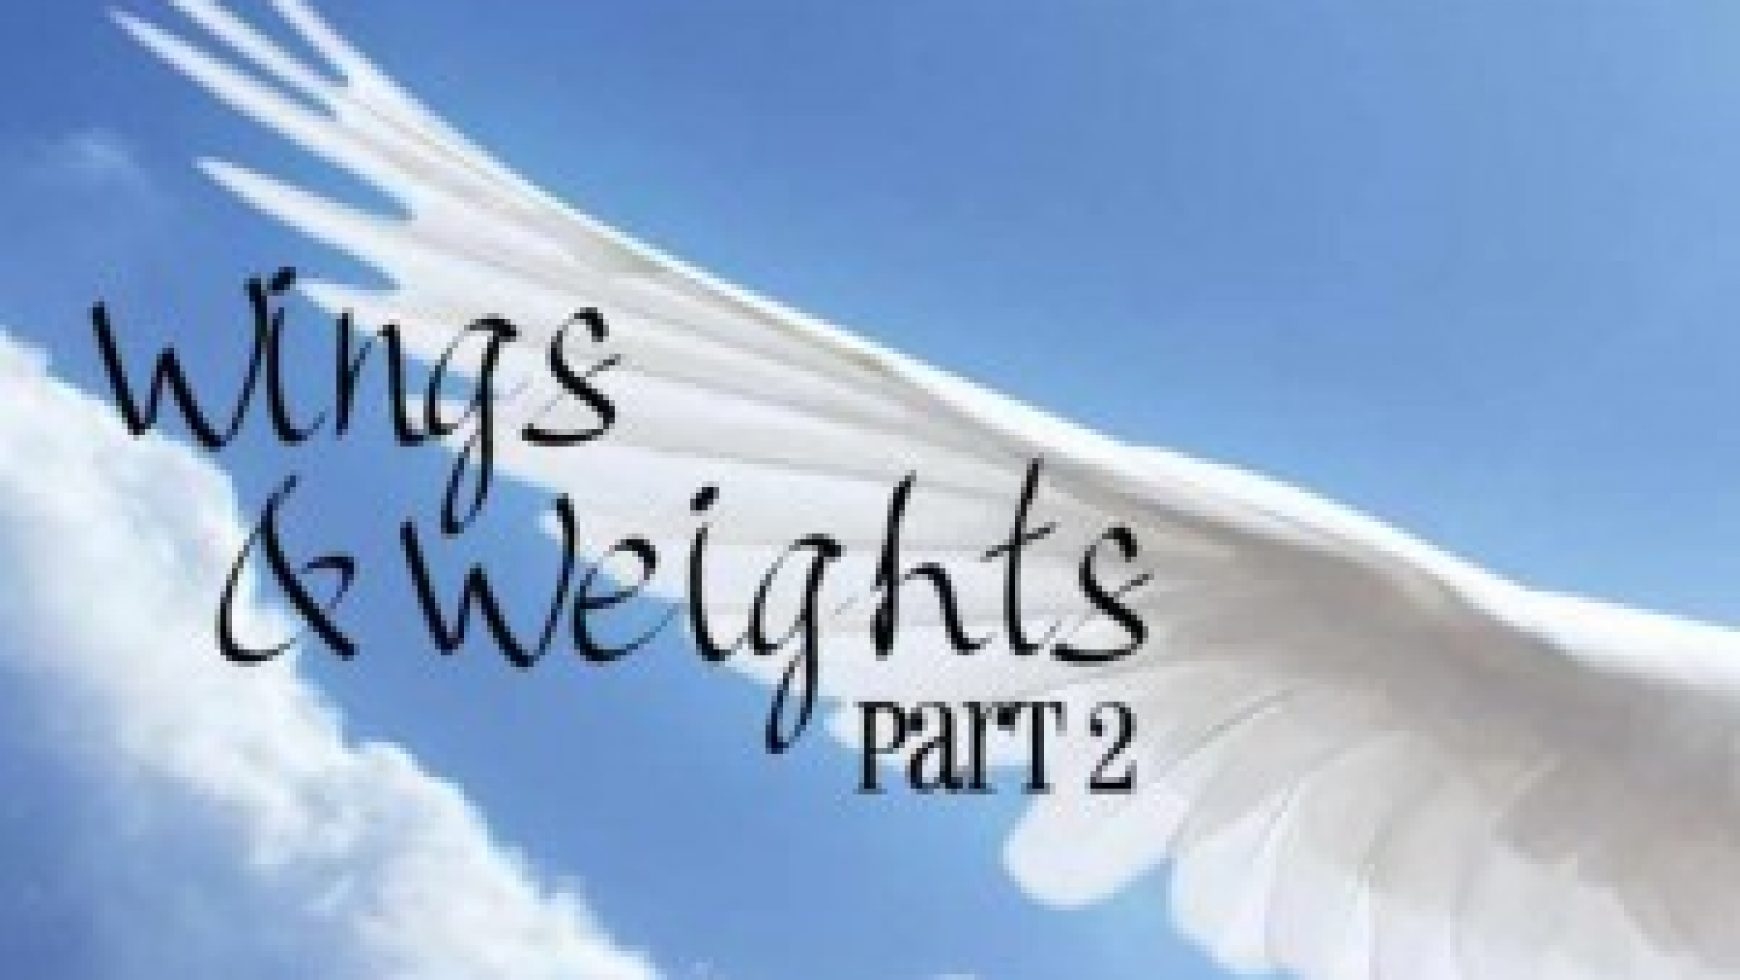 Wings & Weights (Part 2)